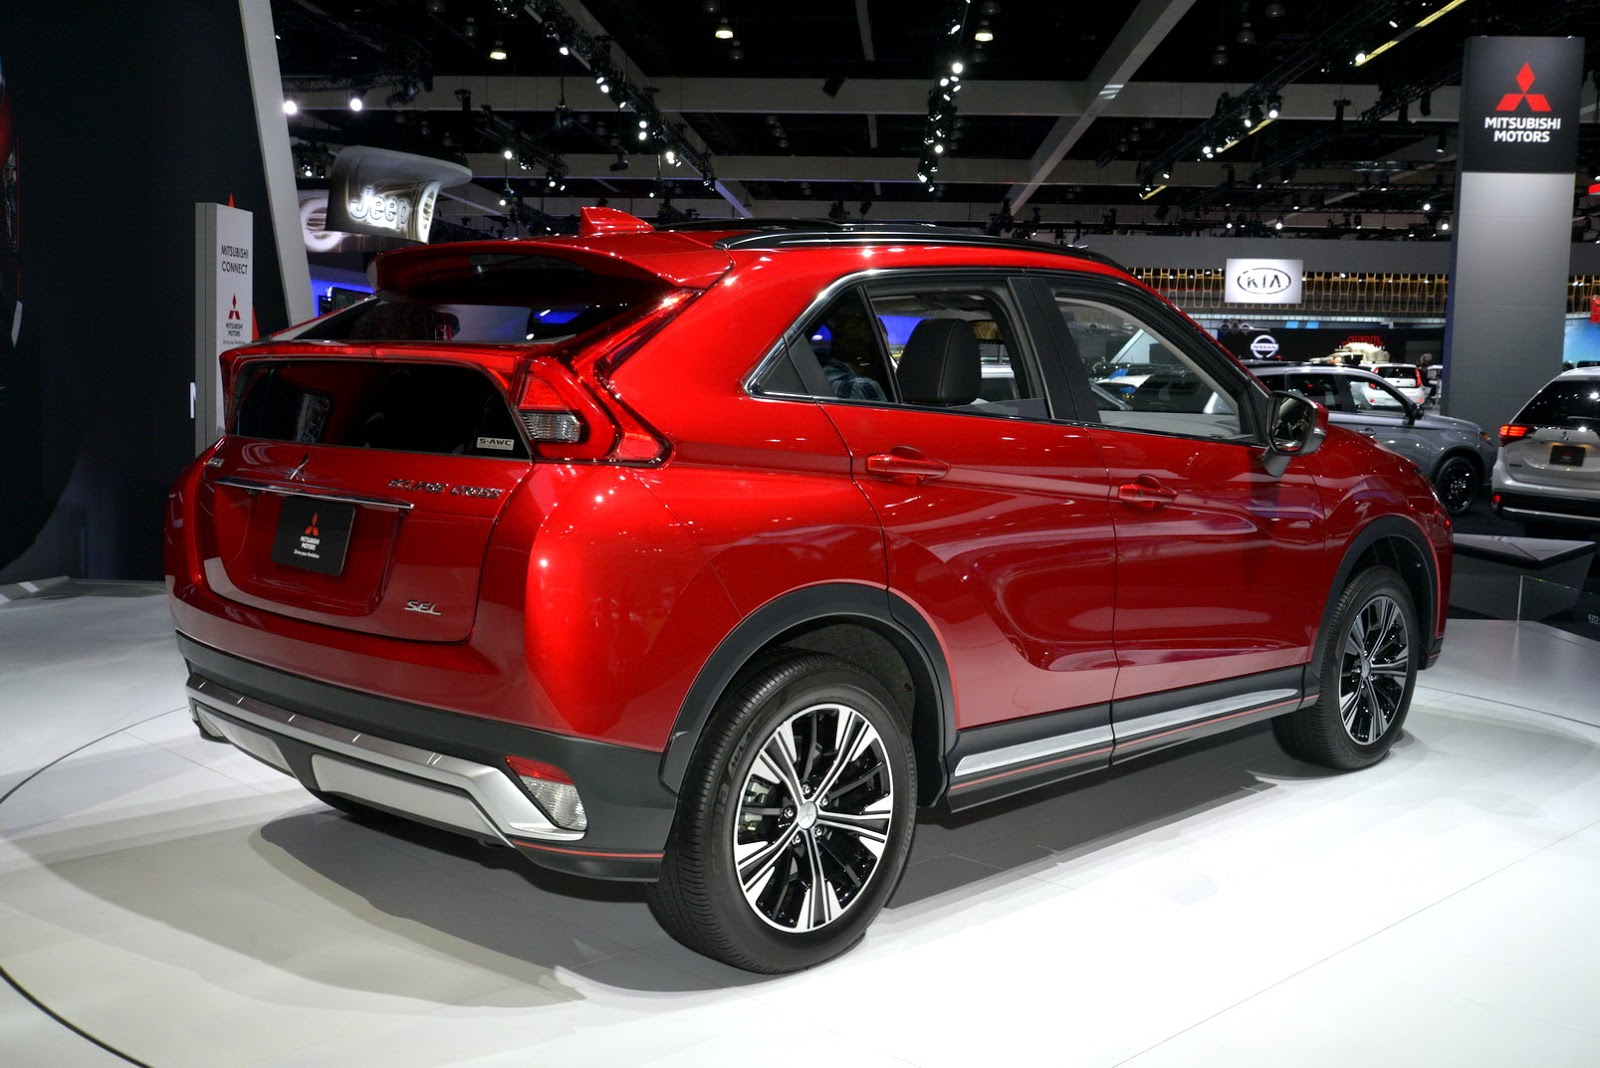 New Mitsubishi Eclipse Cross Lands In LA With A $23,295 ...